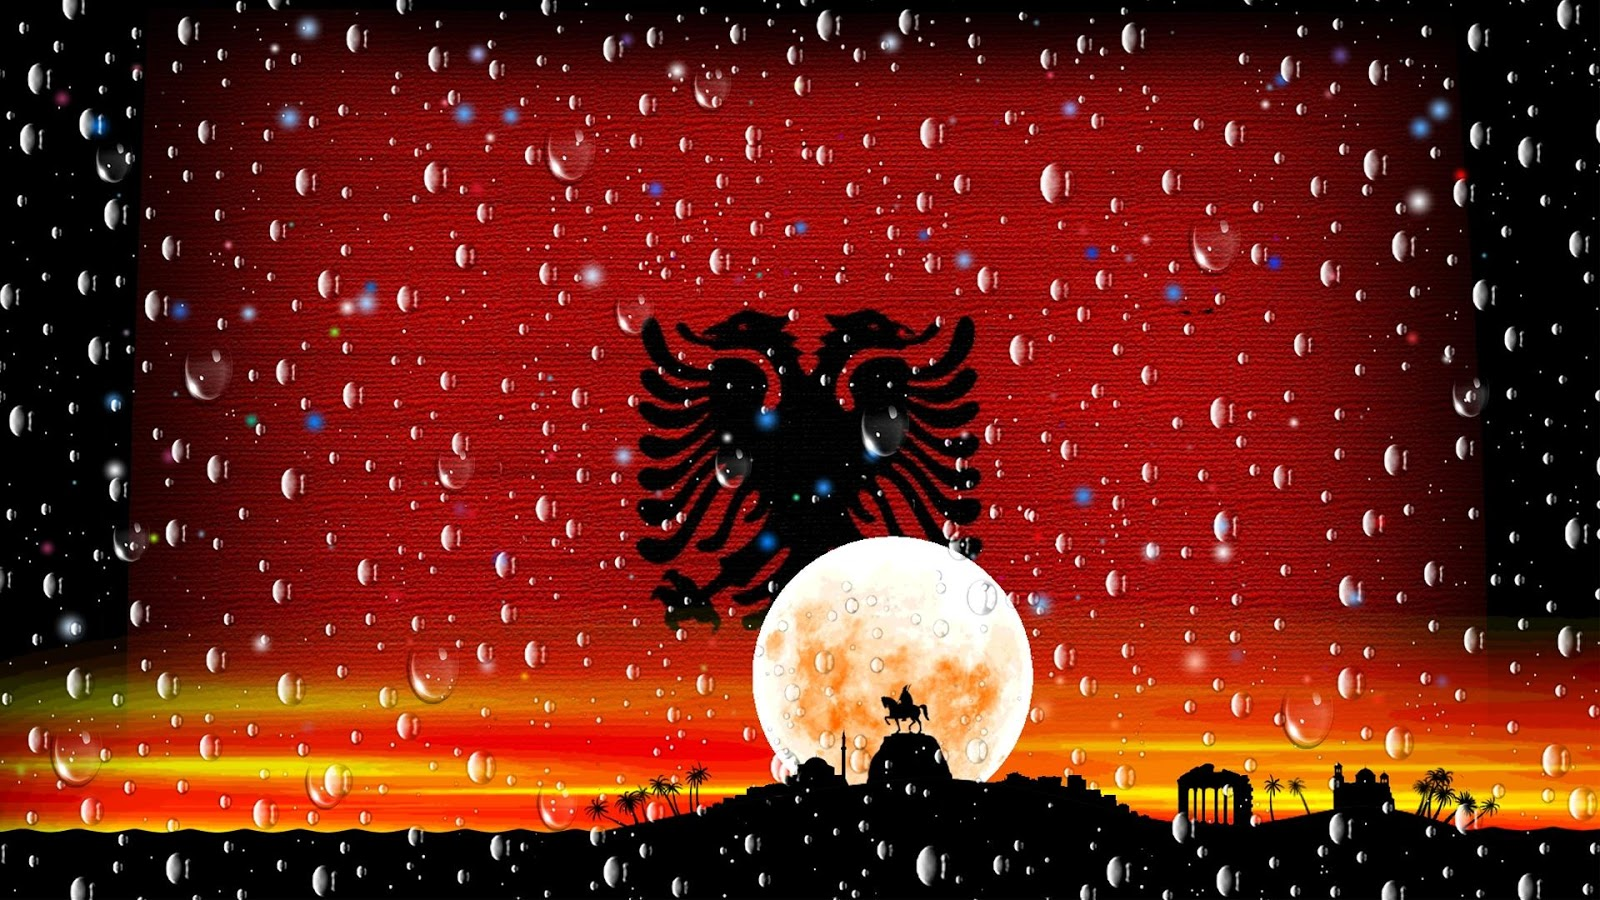 Albania Flag Android Apps On Google Play - Albania flag